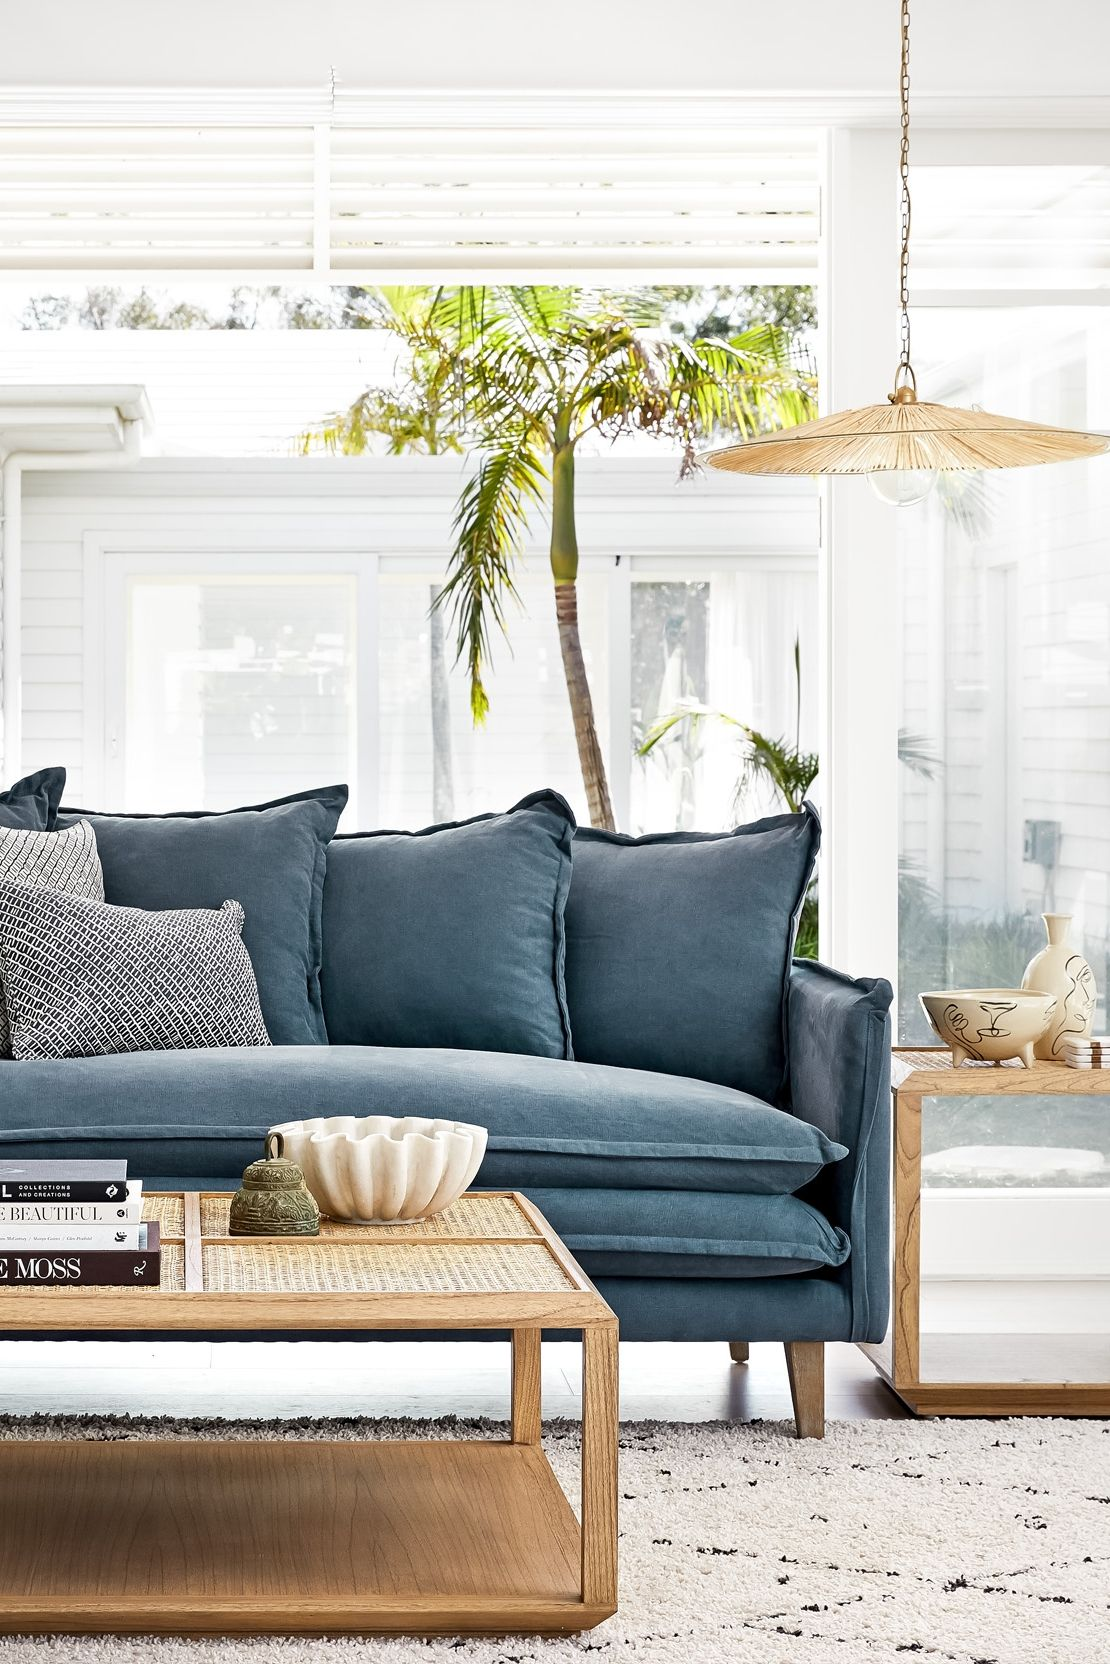 From modern lines to a touch of drama, our sofa range works well in a variety of design schemes.  Shop online or visit our showrooms: www.lamaison.net.au  #lovelamaison #interiordesign #interior_and_living #interiorandhome #homeinterior #sofadesign  #livingroomdesign #livingroominterior #livingroomfurniture #livingroomstyling #coastalstyle #coastalhomes #coastaldesign #coastalhome #coastalinteriors #coastalliving